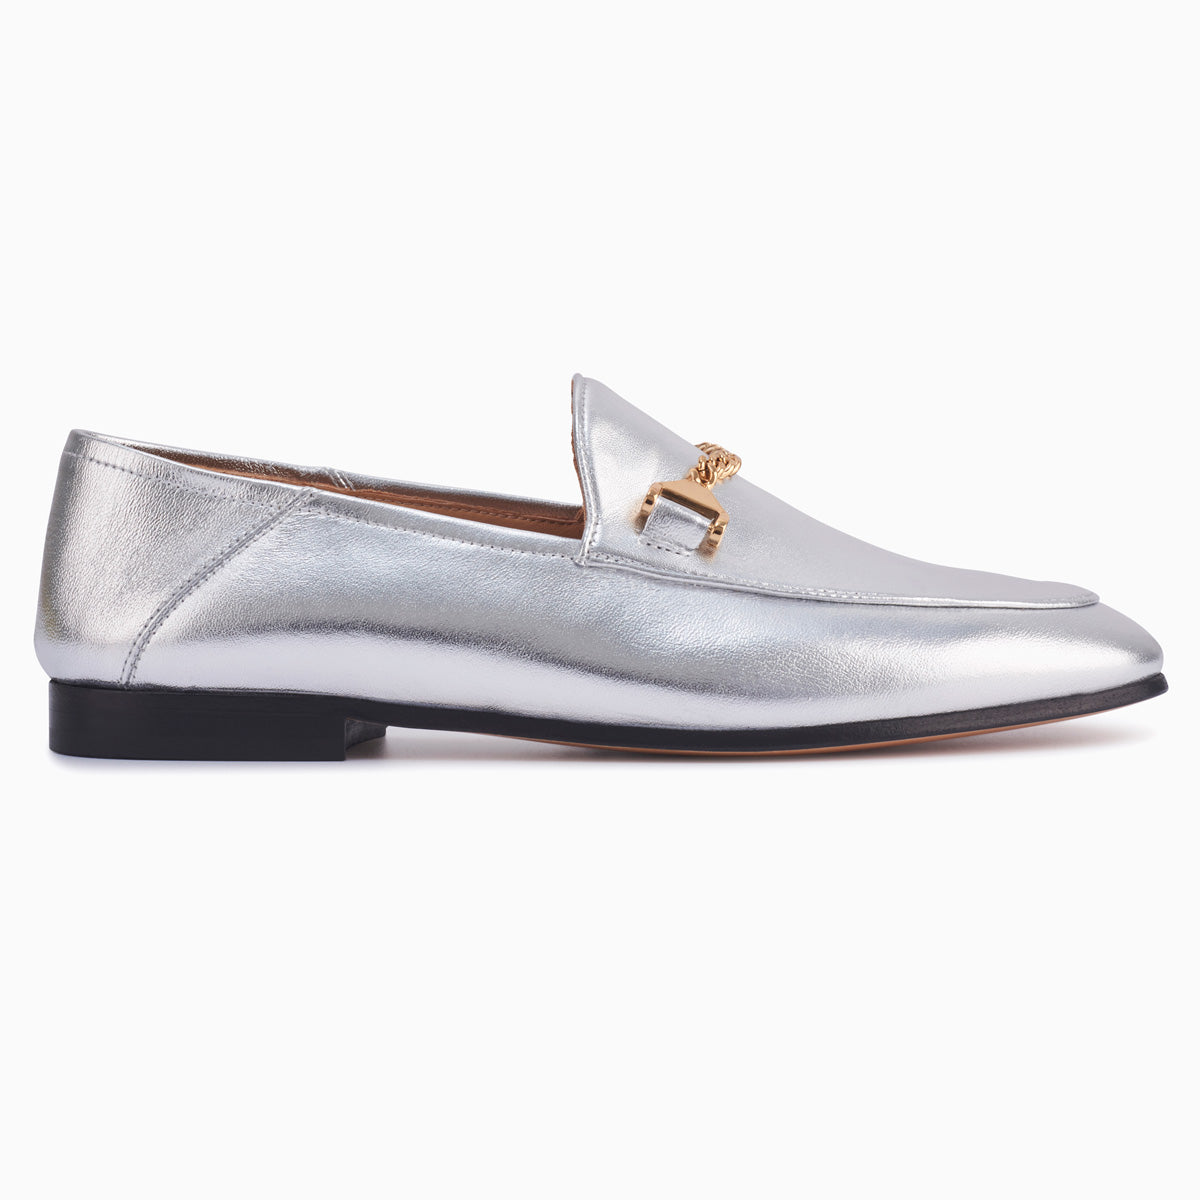 Hyusto Debbie Loafer Silver Glove Side view